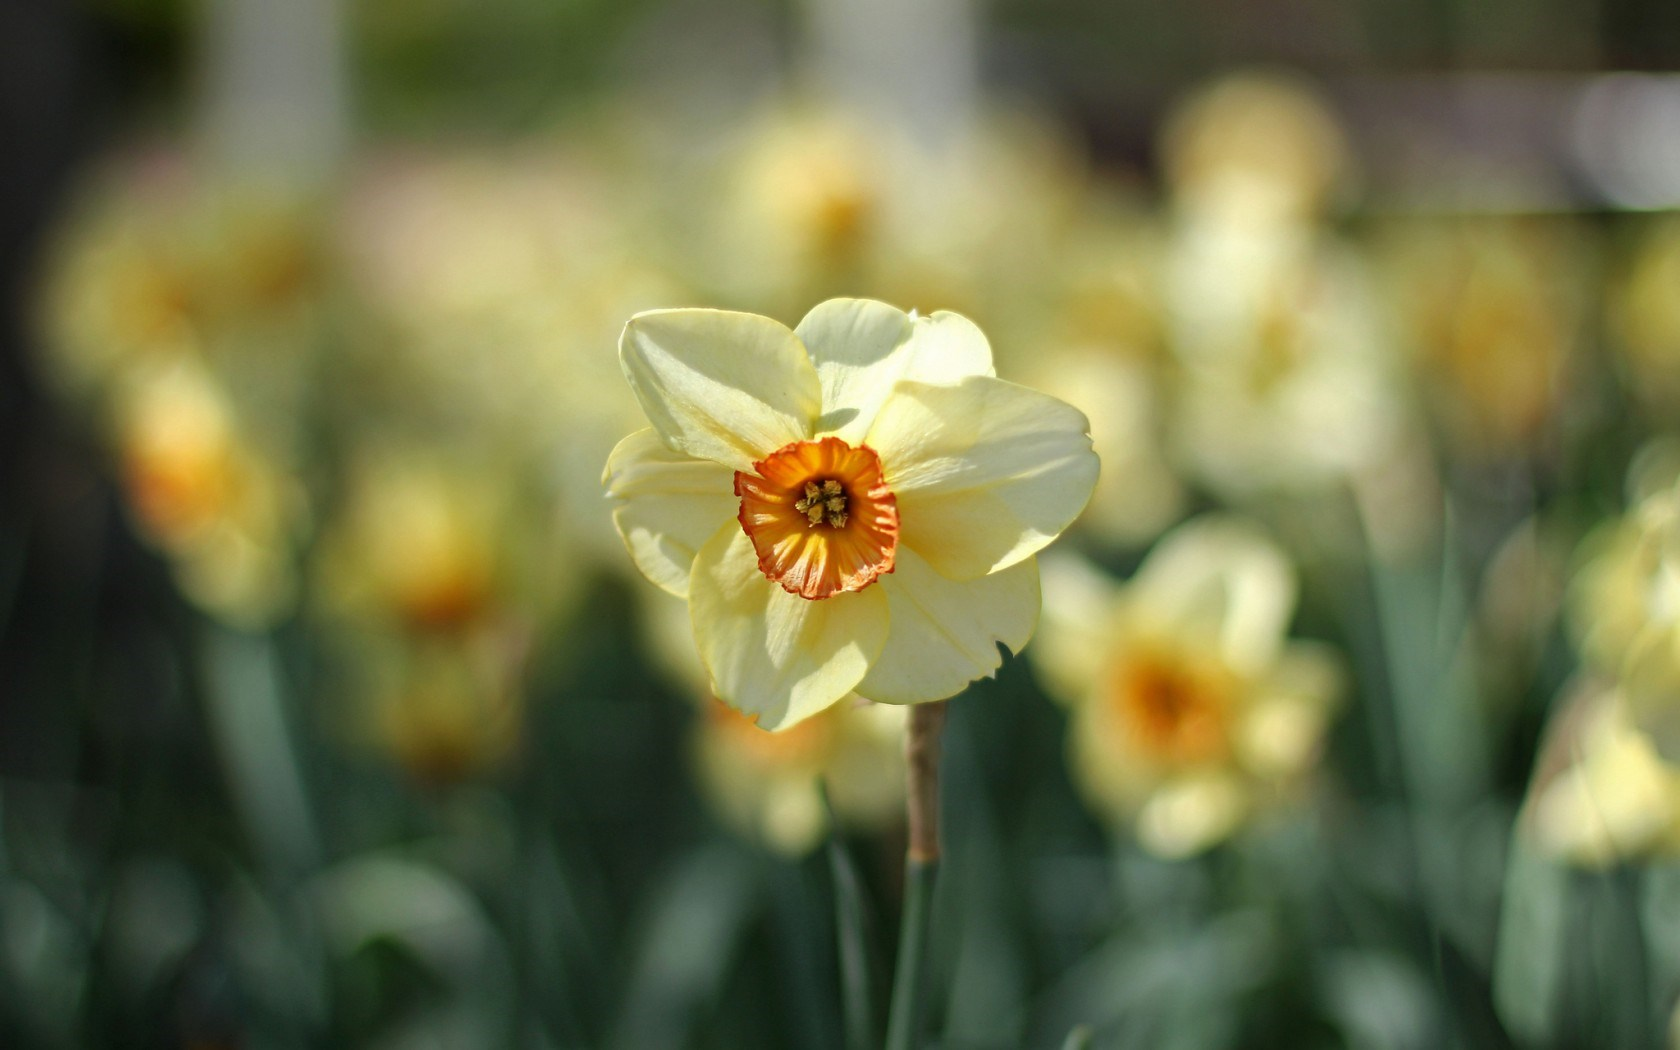 daffodils flower cool